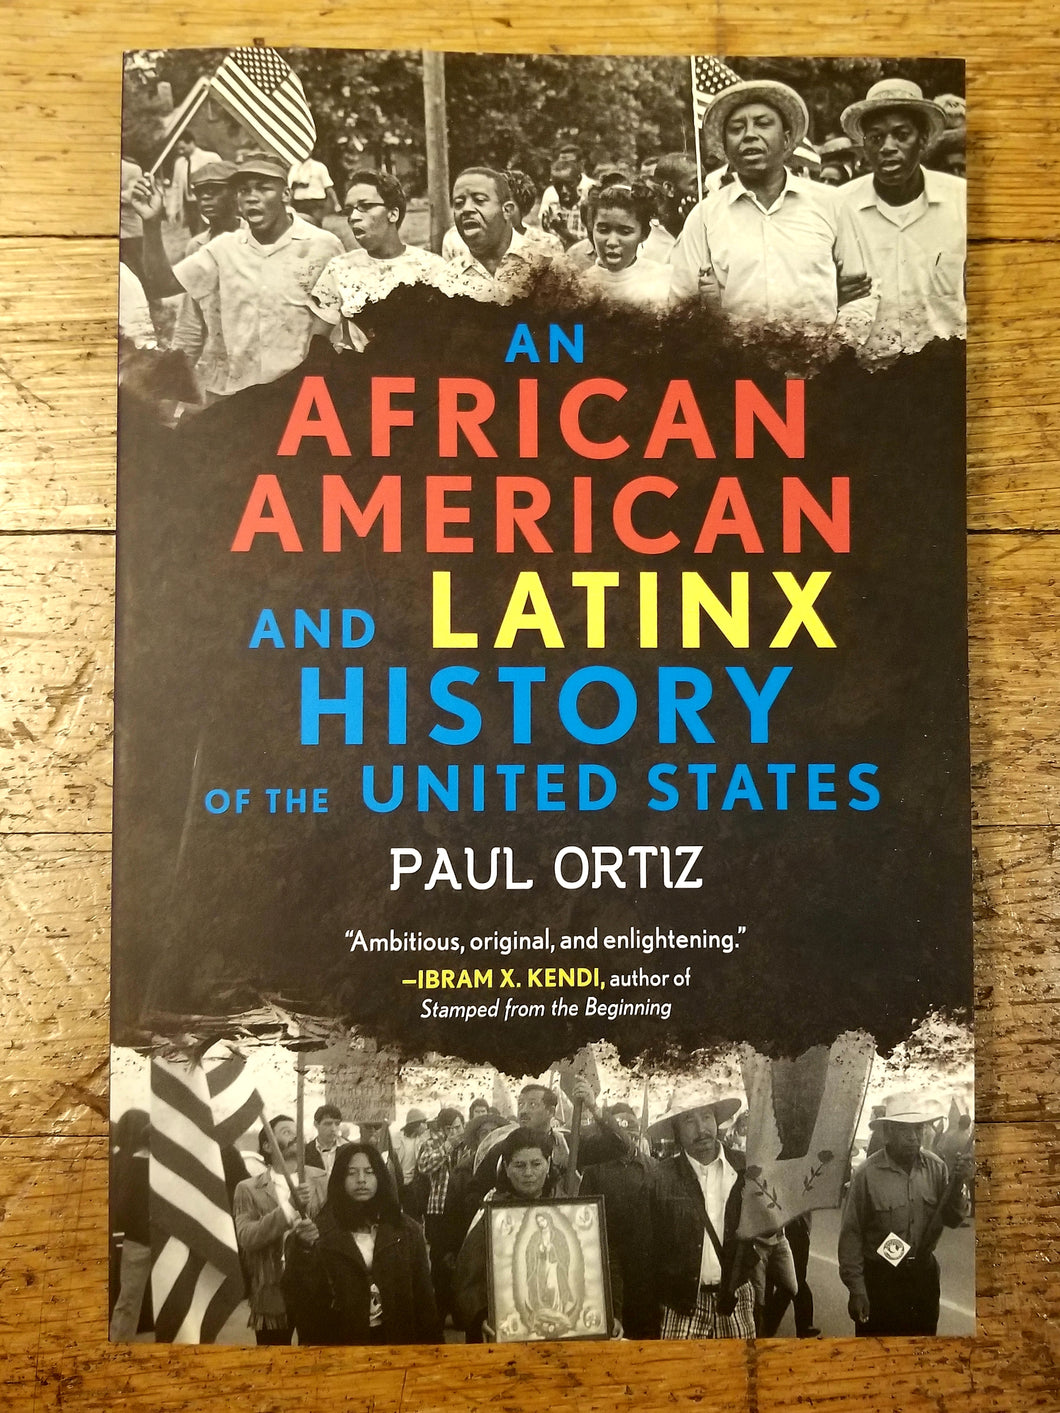 An African American and Latinx History of the United States by Paul Ortizti